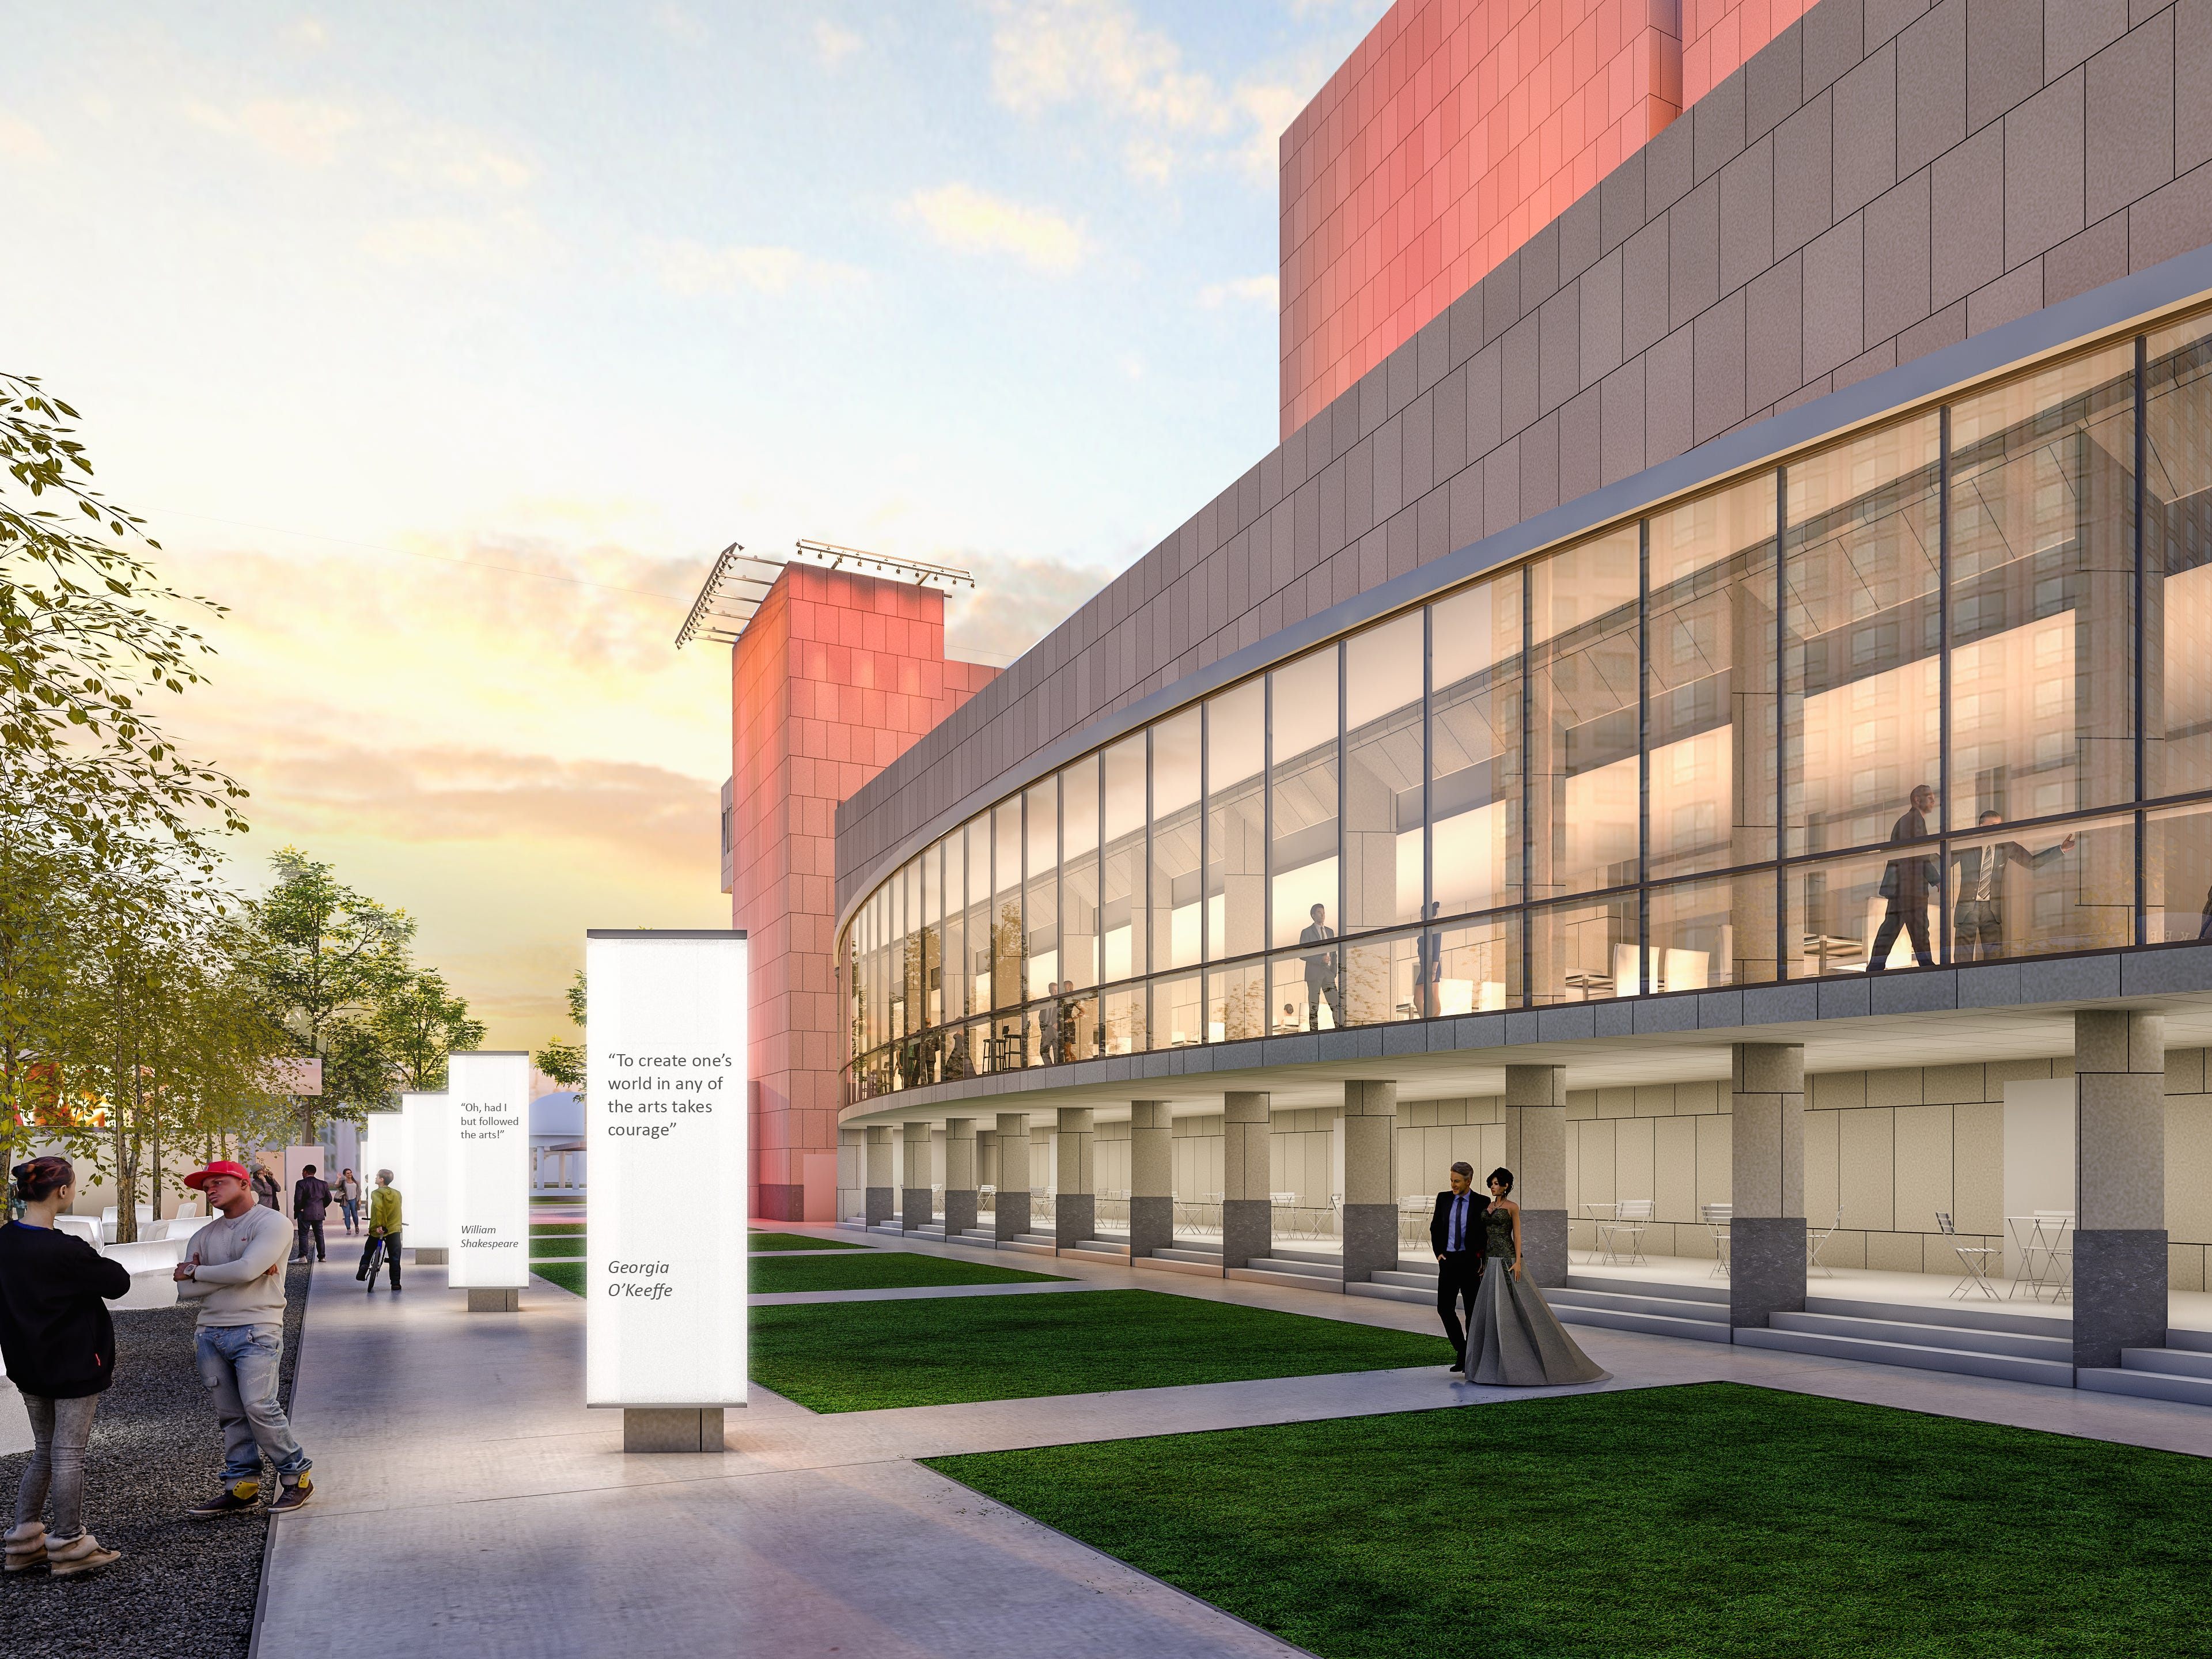 Construction of a new Marcus Center donor lounge, which officials hope to open by September, could be delayed by the facility's historic designation.